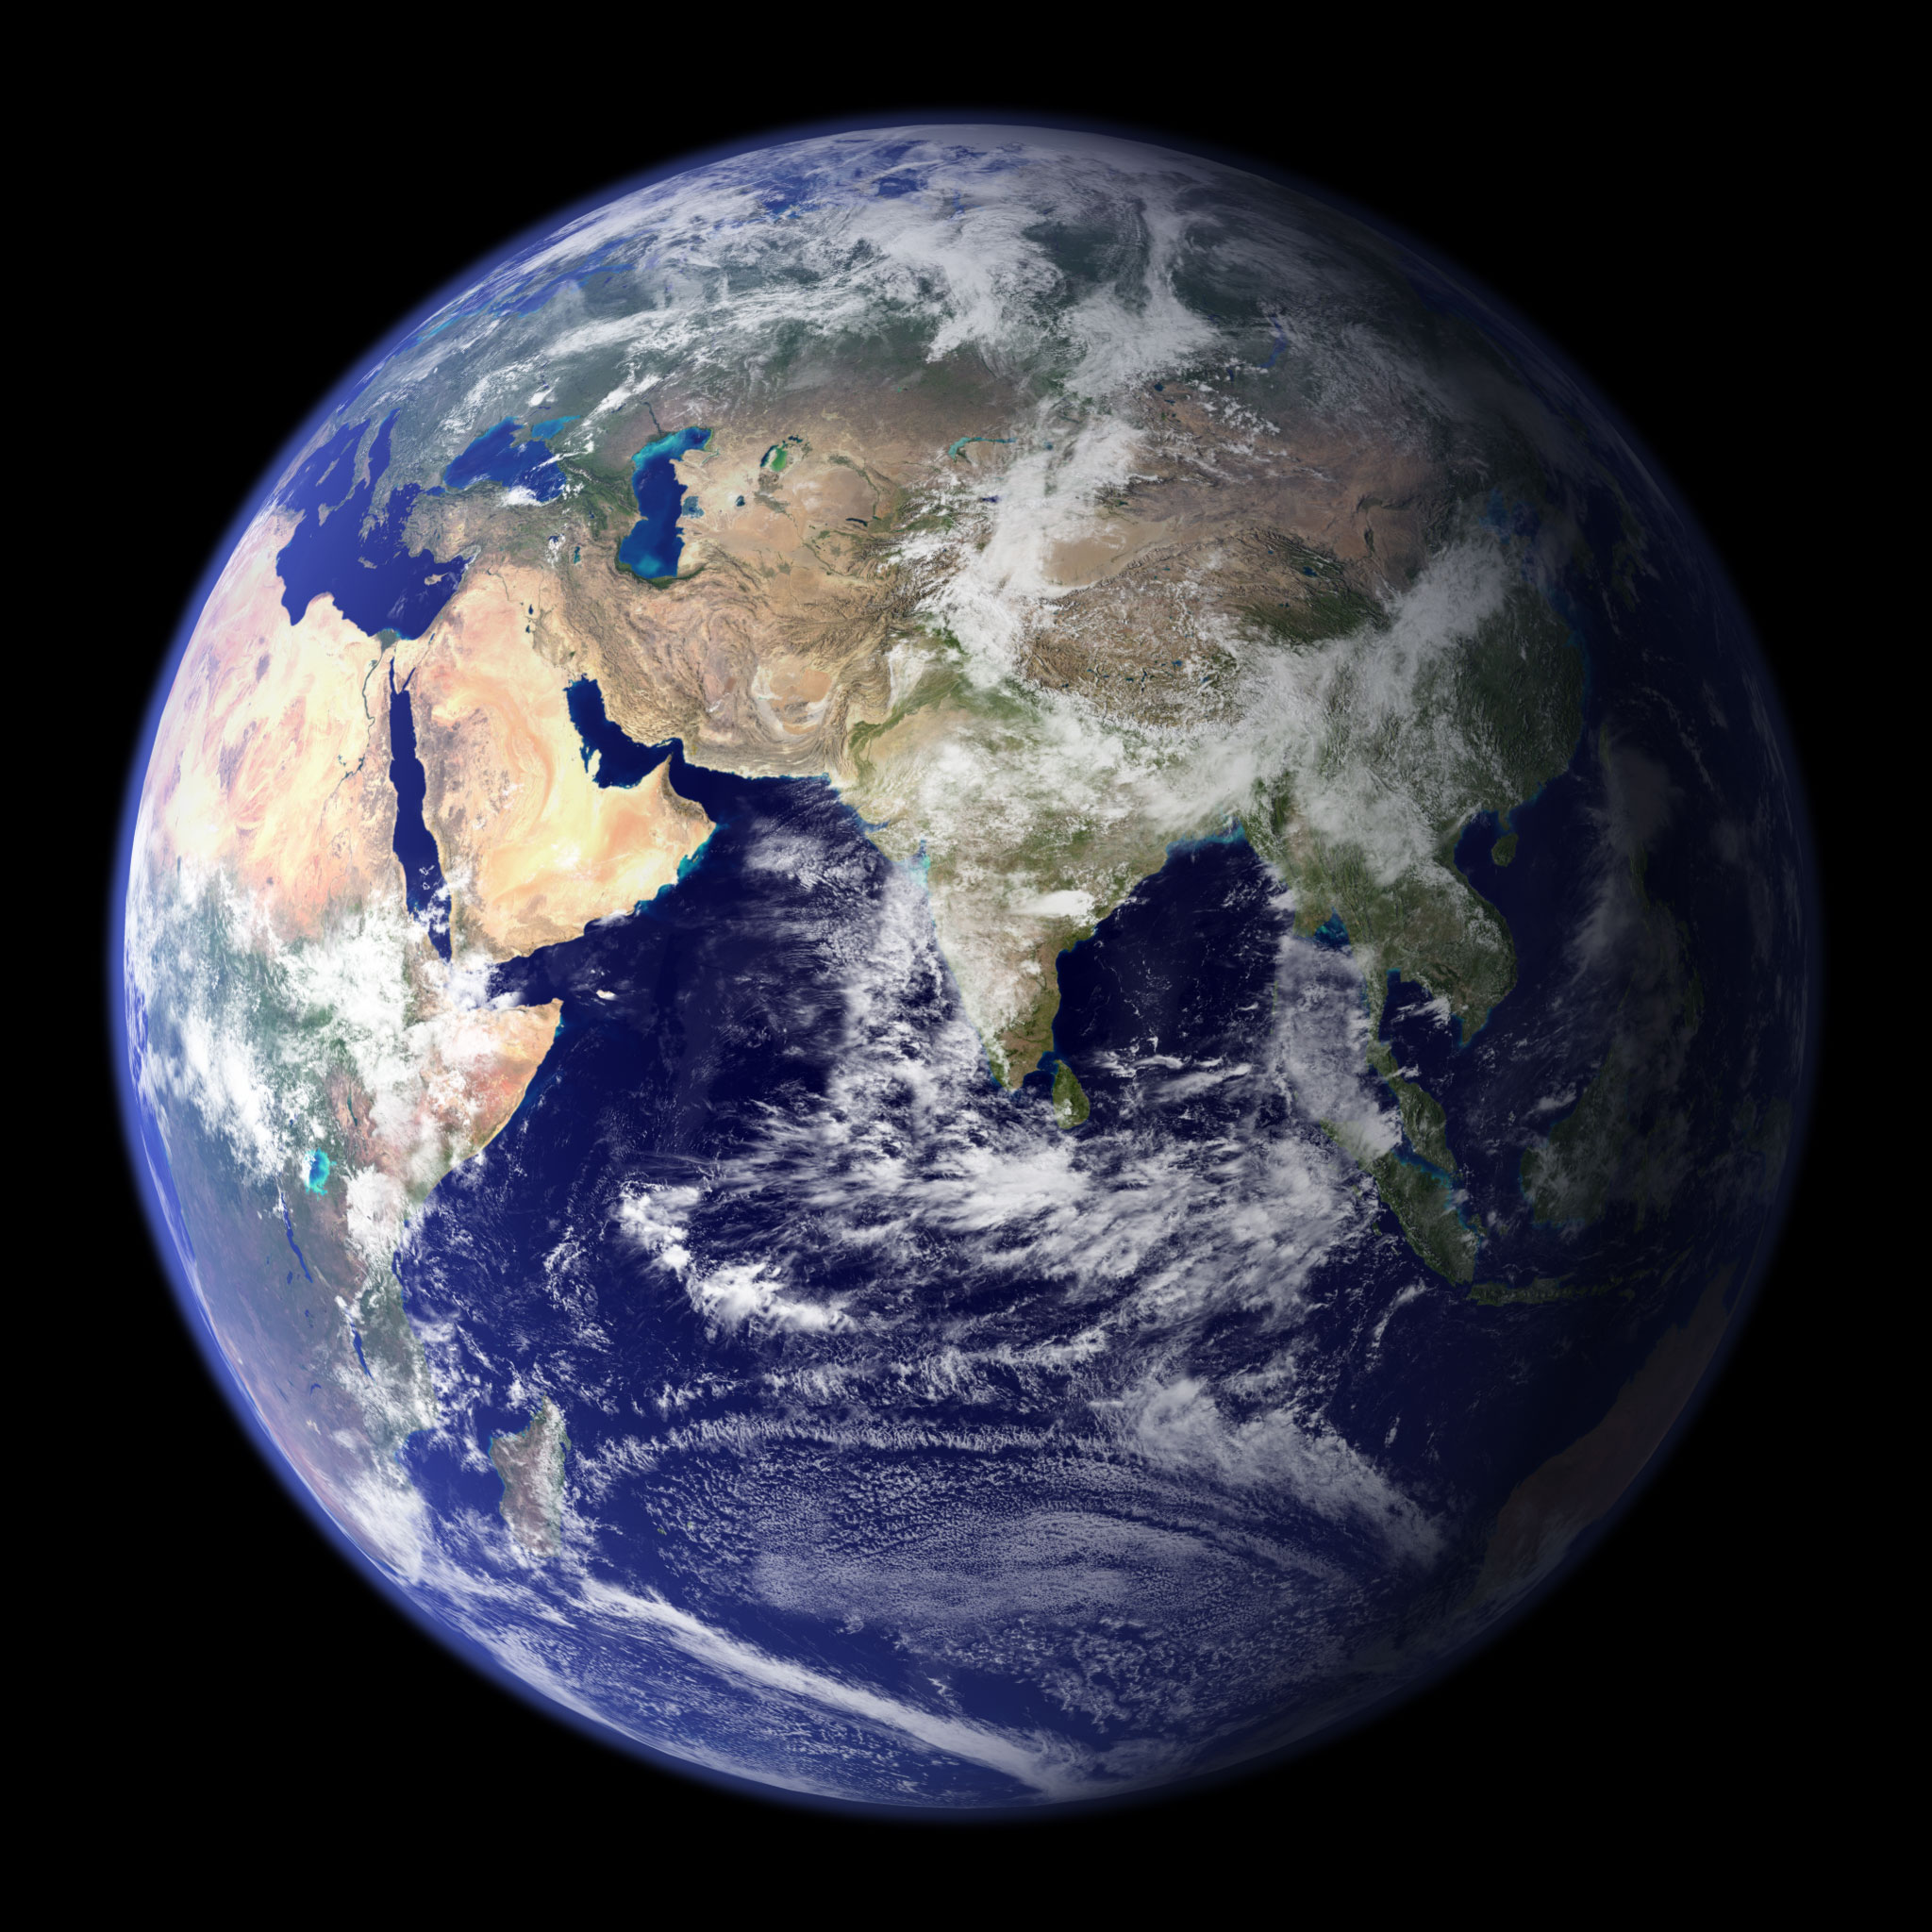 Blue Marble Posters amp Photo Prints  Zazzle